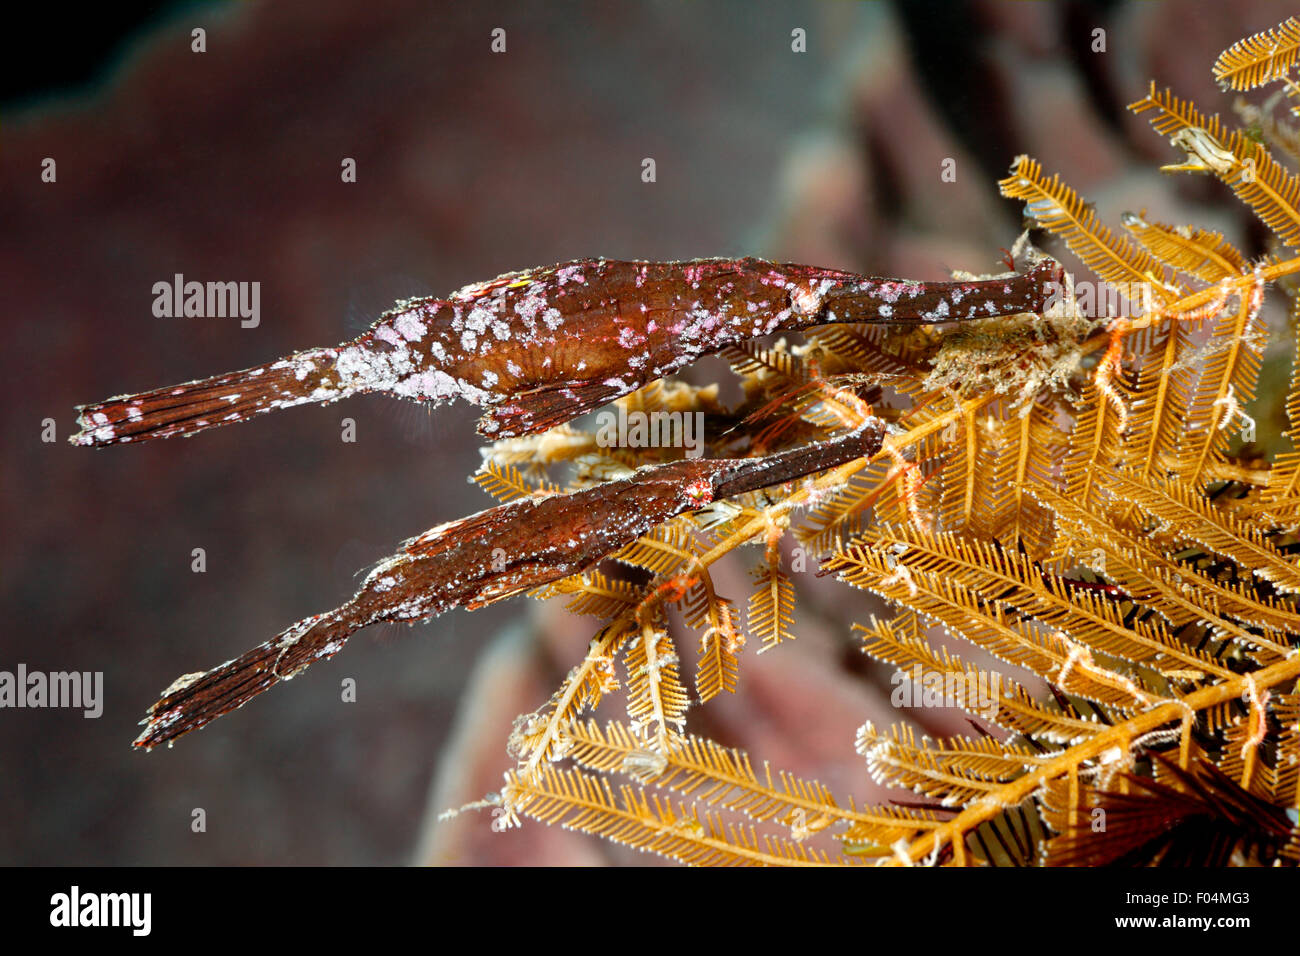 Robust Ghost Pipefish, Solenostomus cyanopterus. Female on the top, male on the bottom. - Stock Image